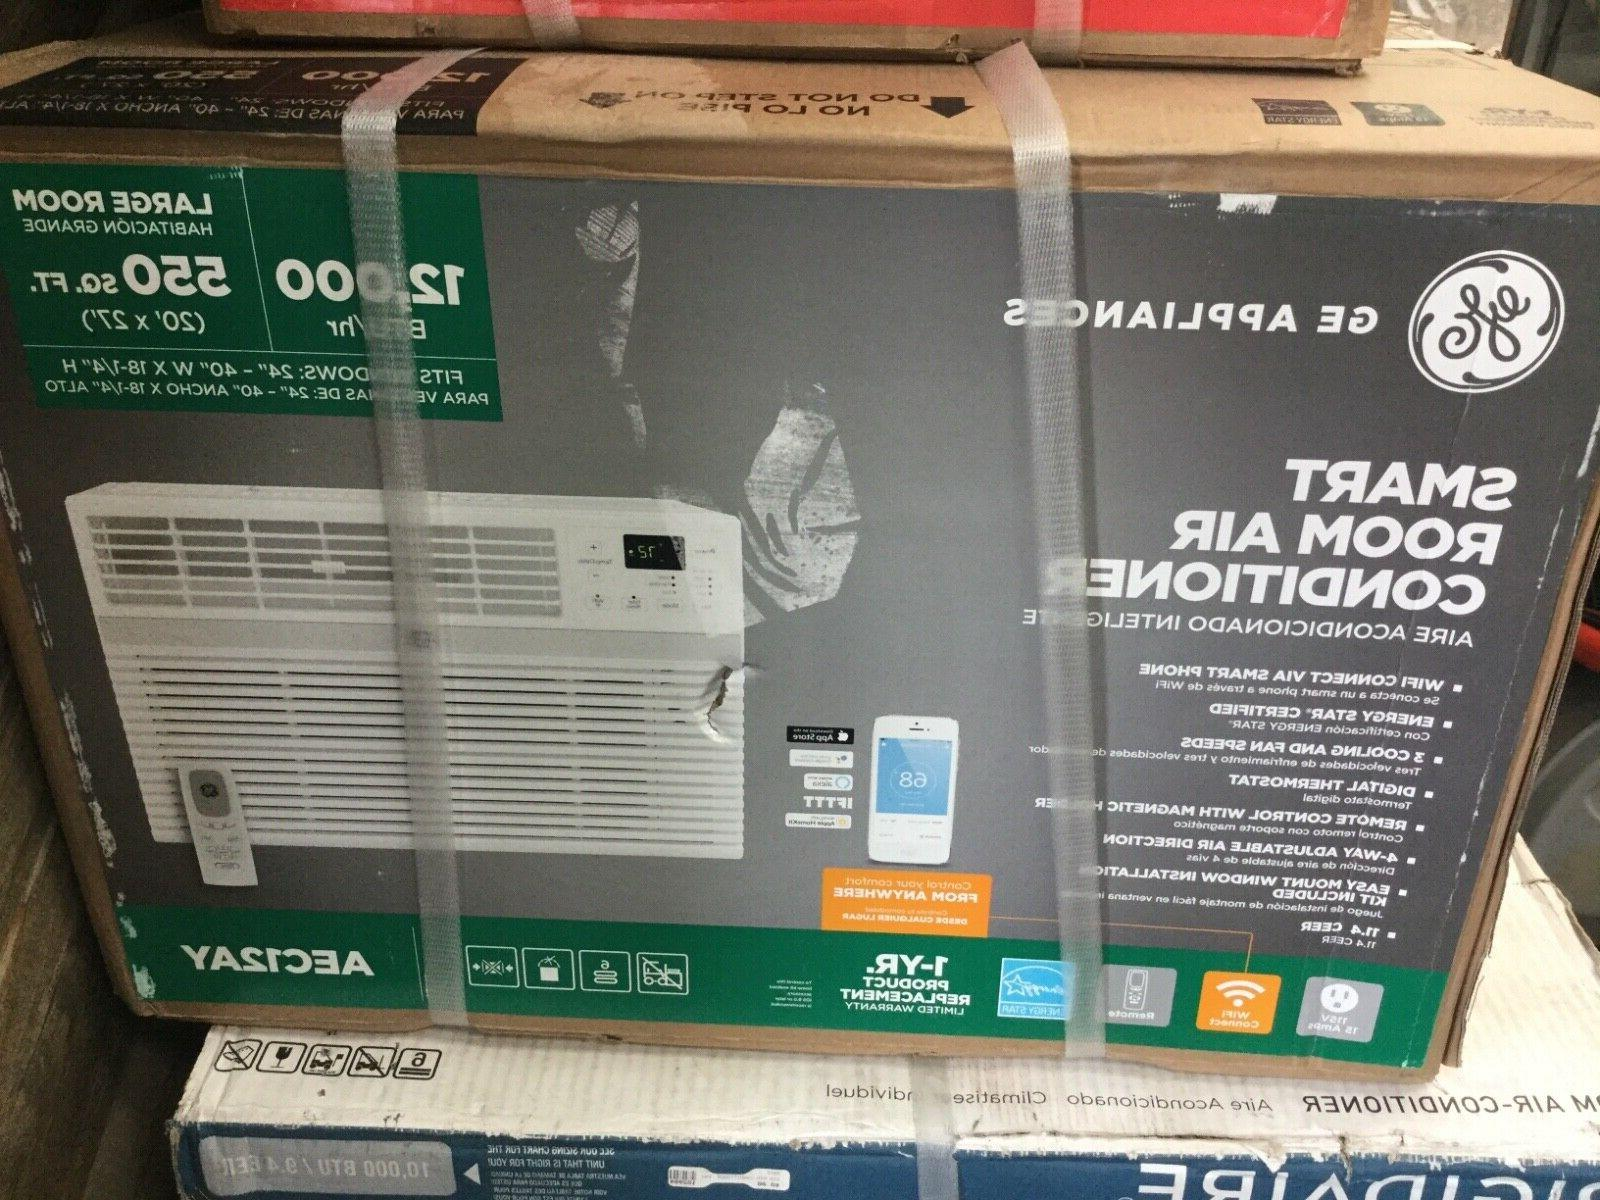 550 sq ft window air conditioner 12000